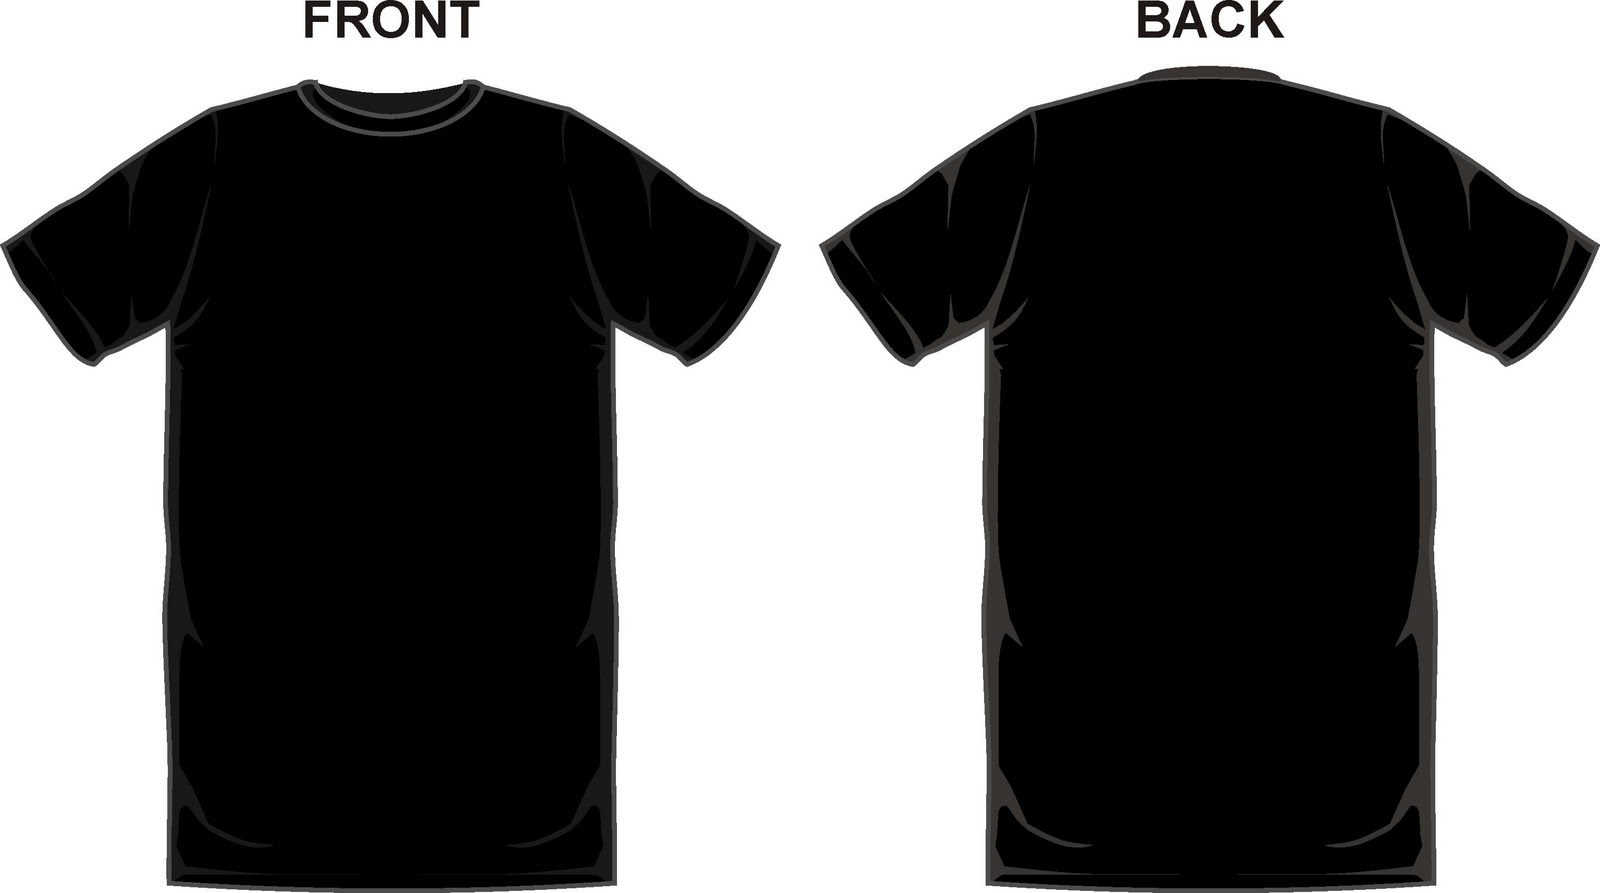 Black T-Shirt Template Front and Back